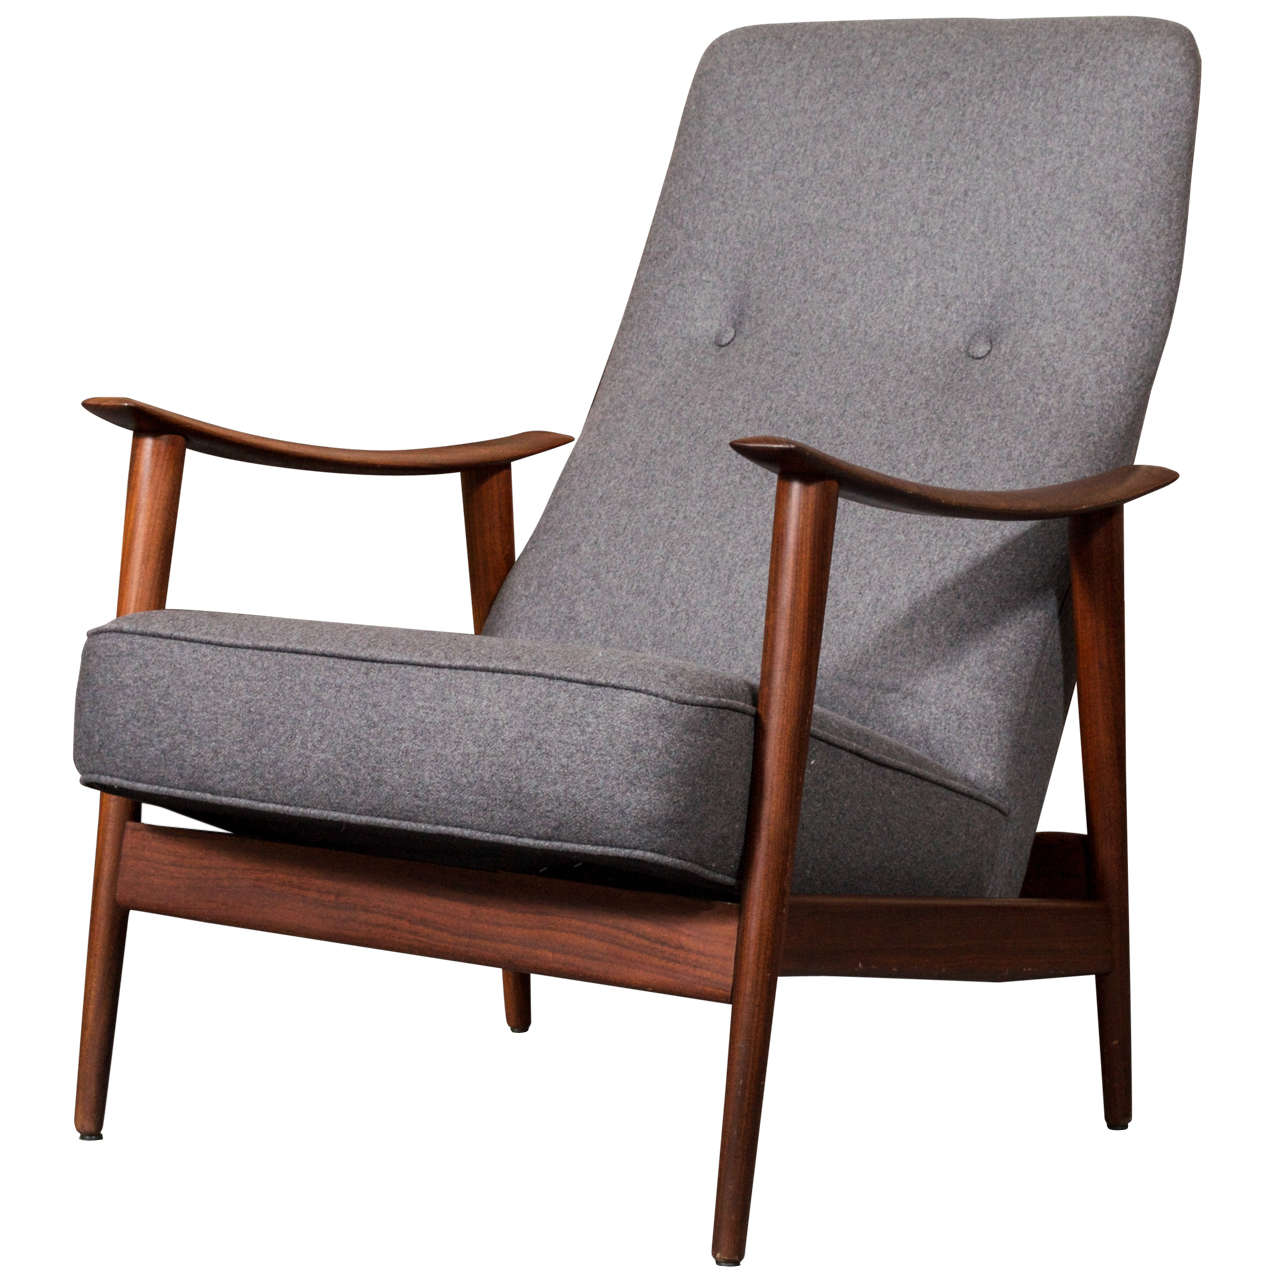 1960 39 s scandinavian teak rocking lounge chair in gray wool at 1stdibs - Scandinavian chair ...